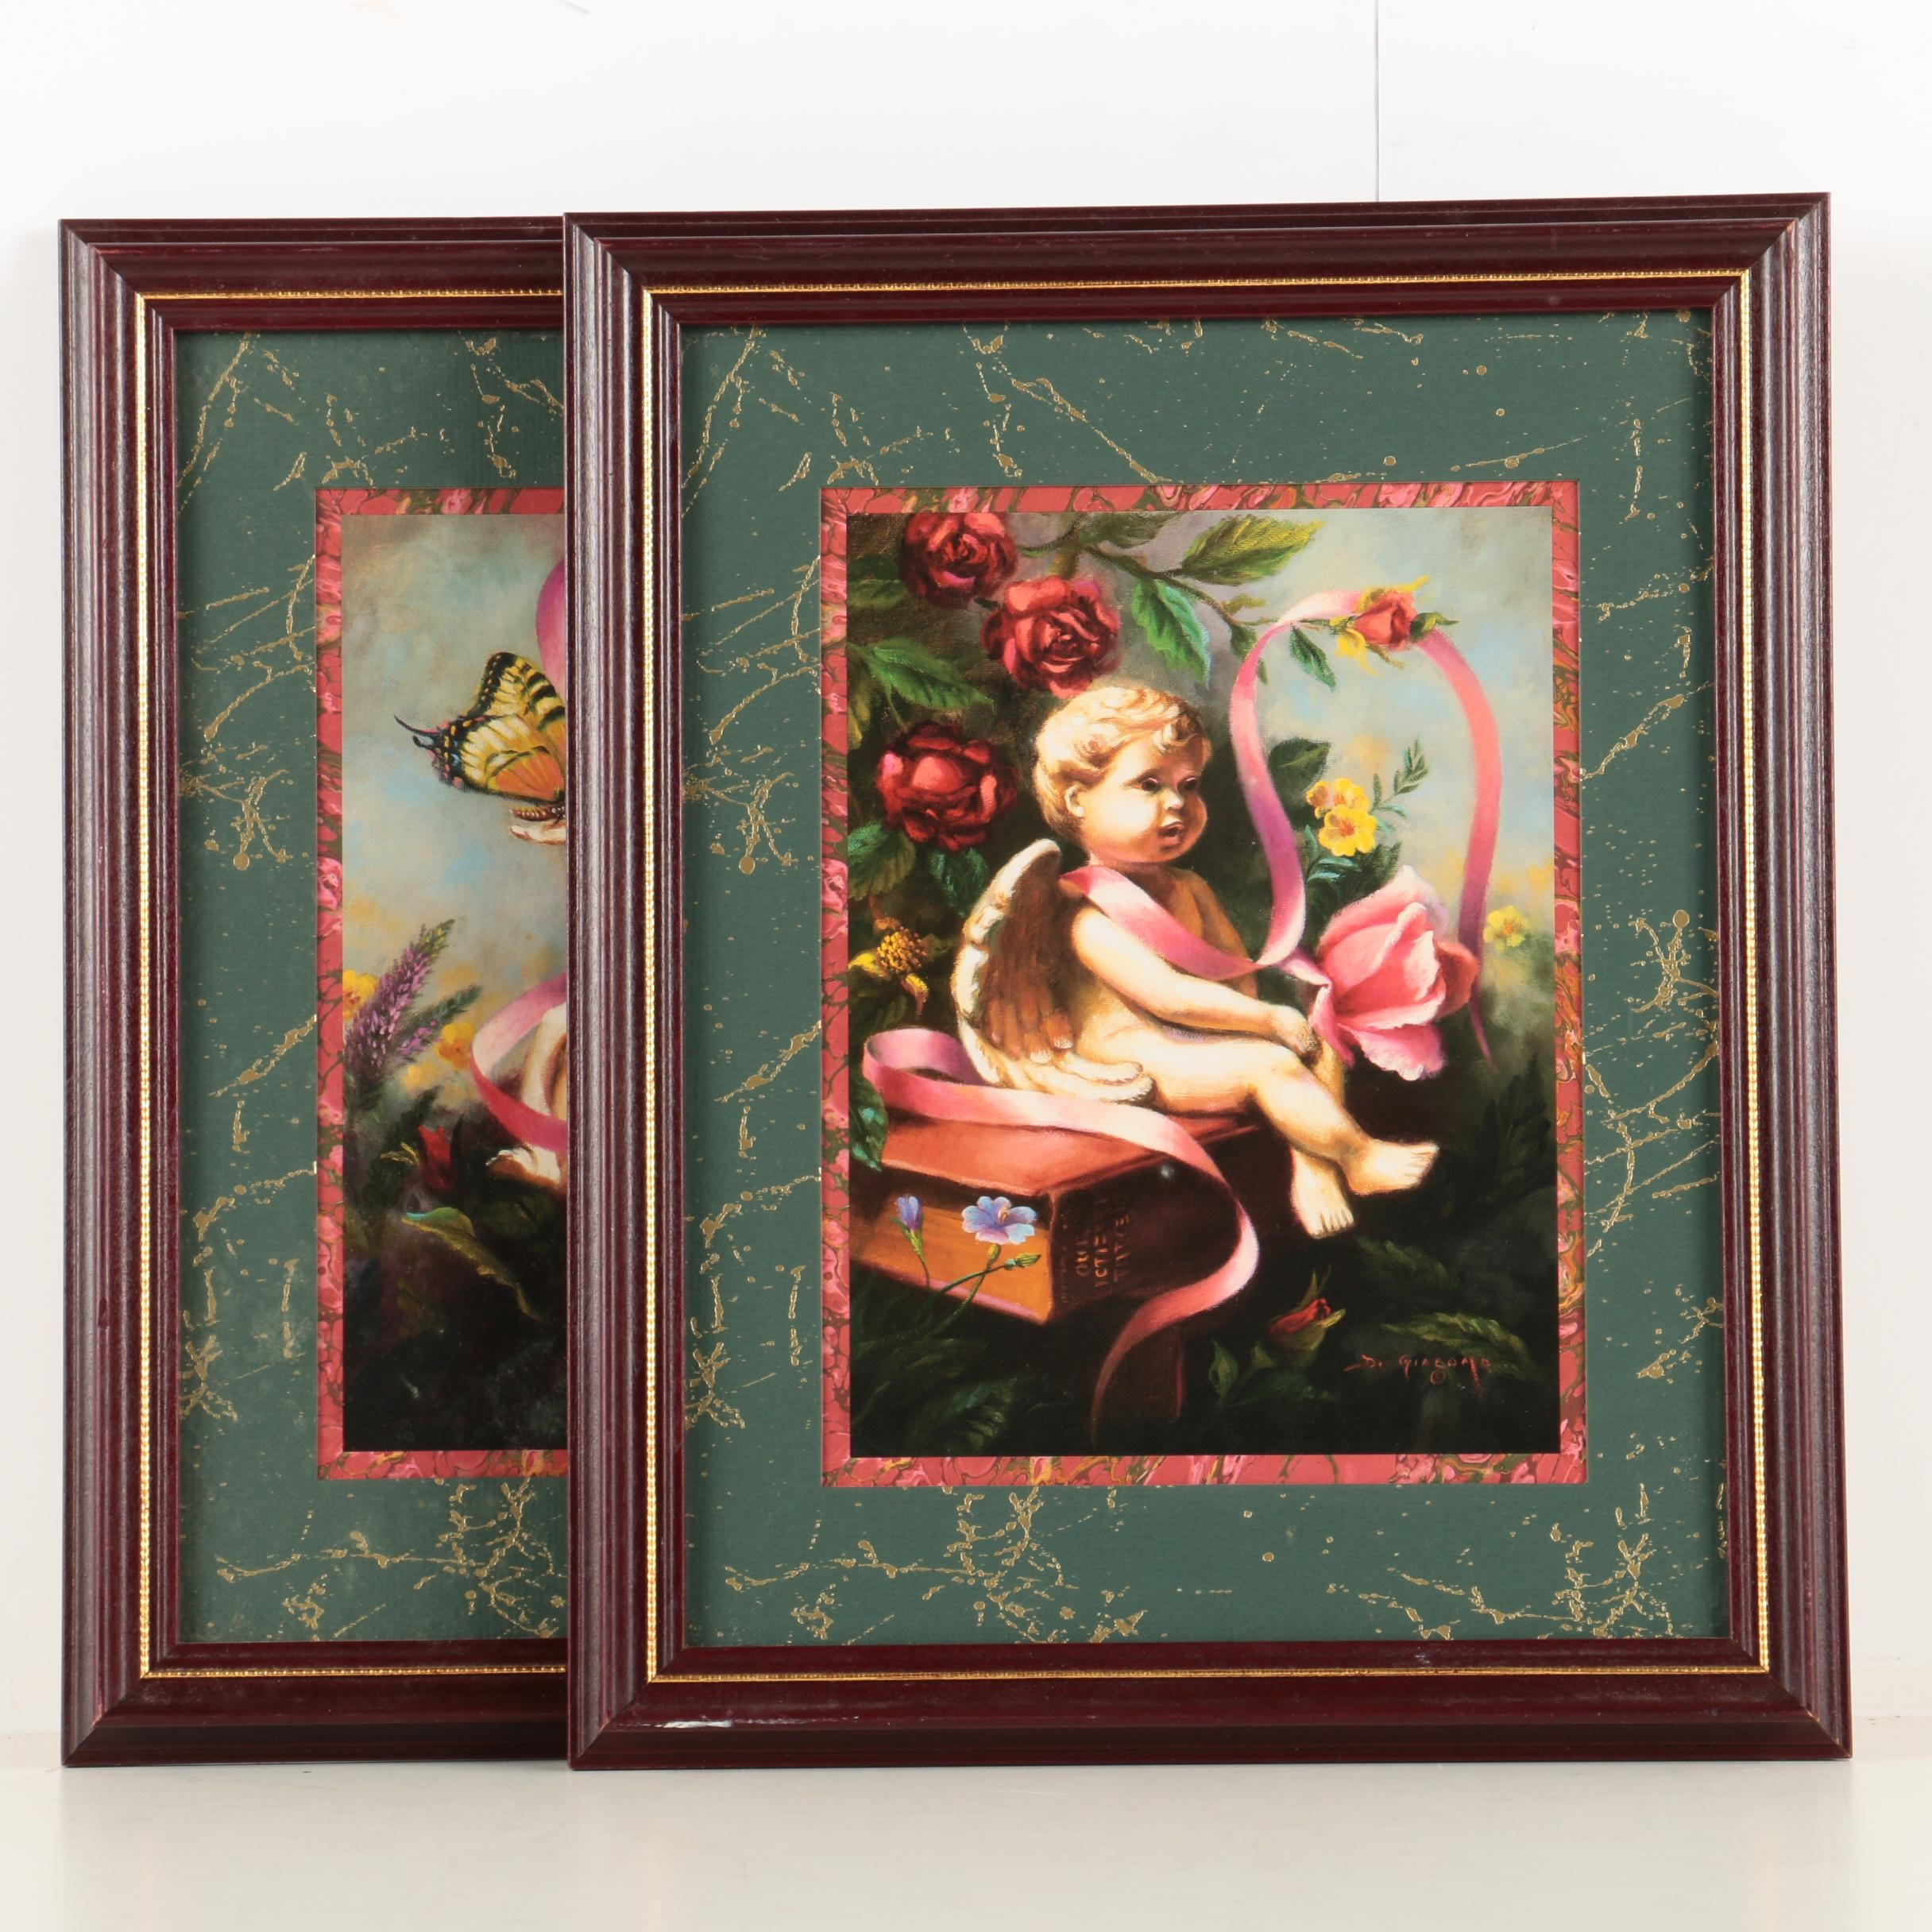 A Pair of Offset Lithograph Prints After D. Giacomo Paintings of Cherubs